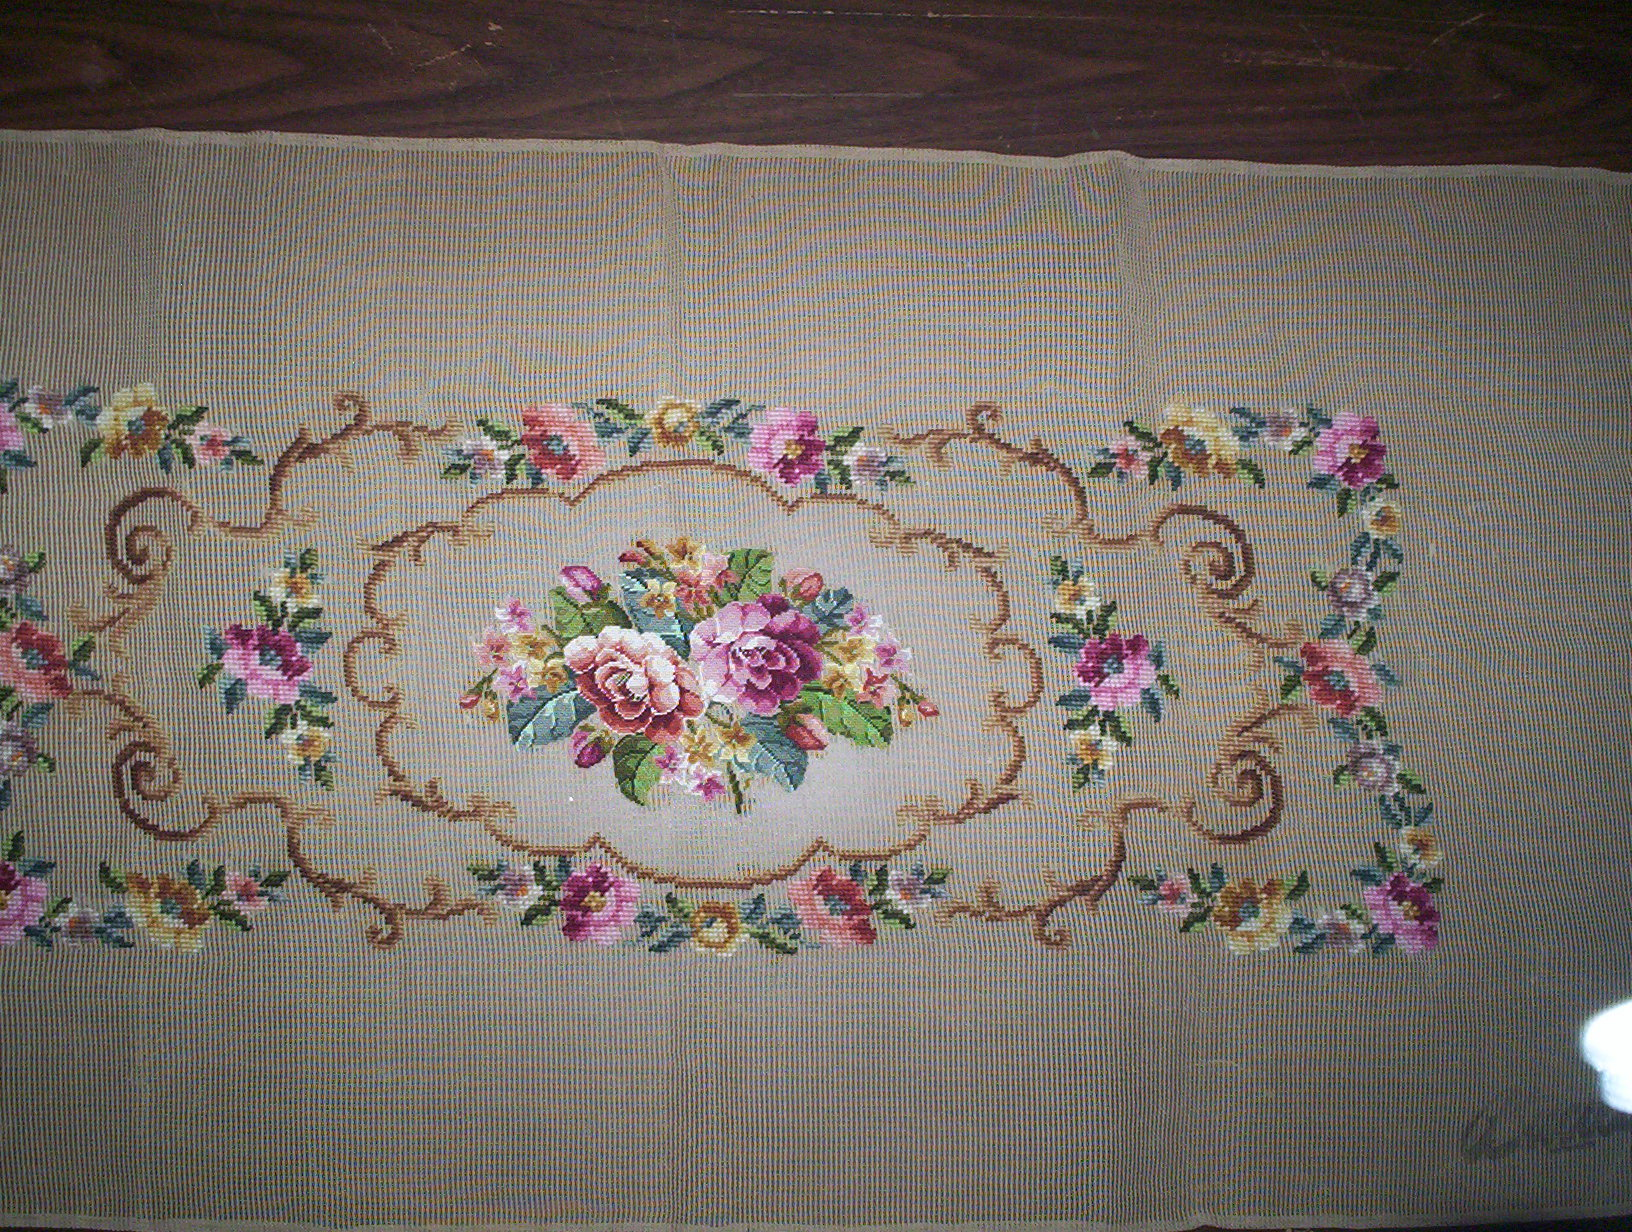 Free Embroidery Designs, Cute Embroidery Designs on home quilt design, home button design, home cross stitch design, home trim design, home pillow design, home sewing, home painting design, home print design, home art design, home inspiration design, home drawing design, home fashion design, home size, home paint design, home furniture design, home decorating design, home garden design, home kitchen design, home gardening design, home wallpaper design,